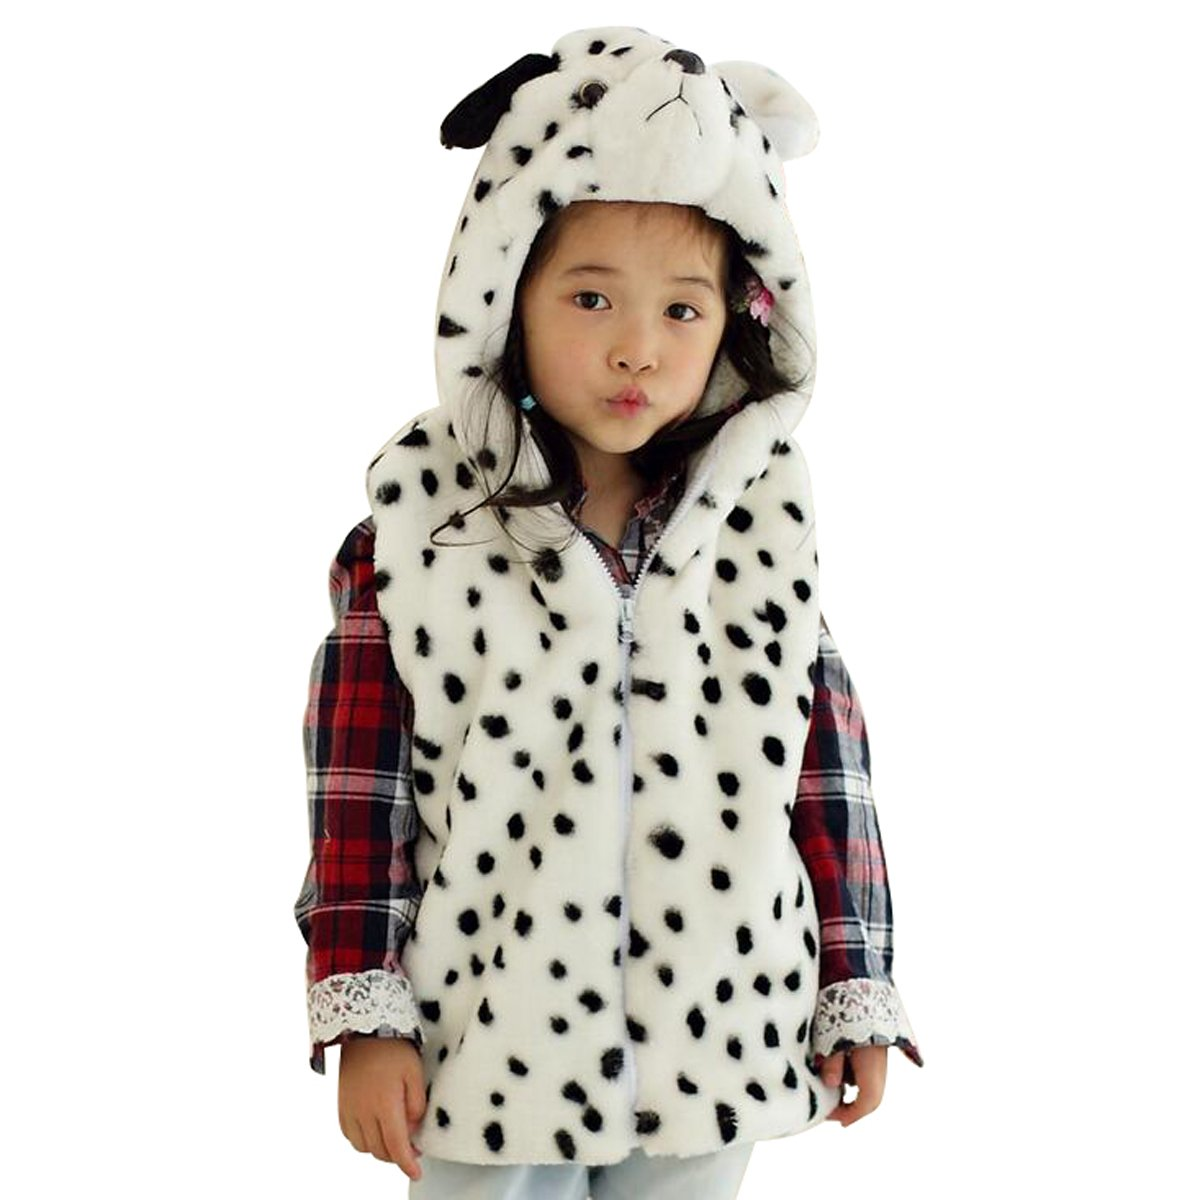 Hanstyle Unisex Toddler/kids/child Cartoon Plush Hooded Vest Costumes, Dot Dog (M(5-9Y)) by TOLLION (Image #1)